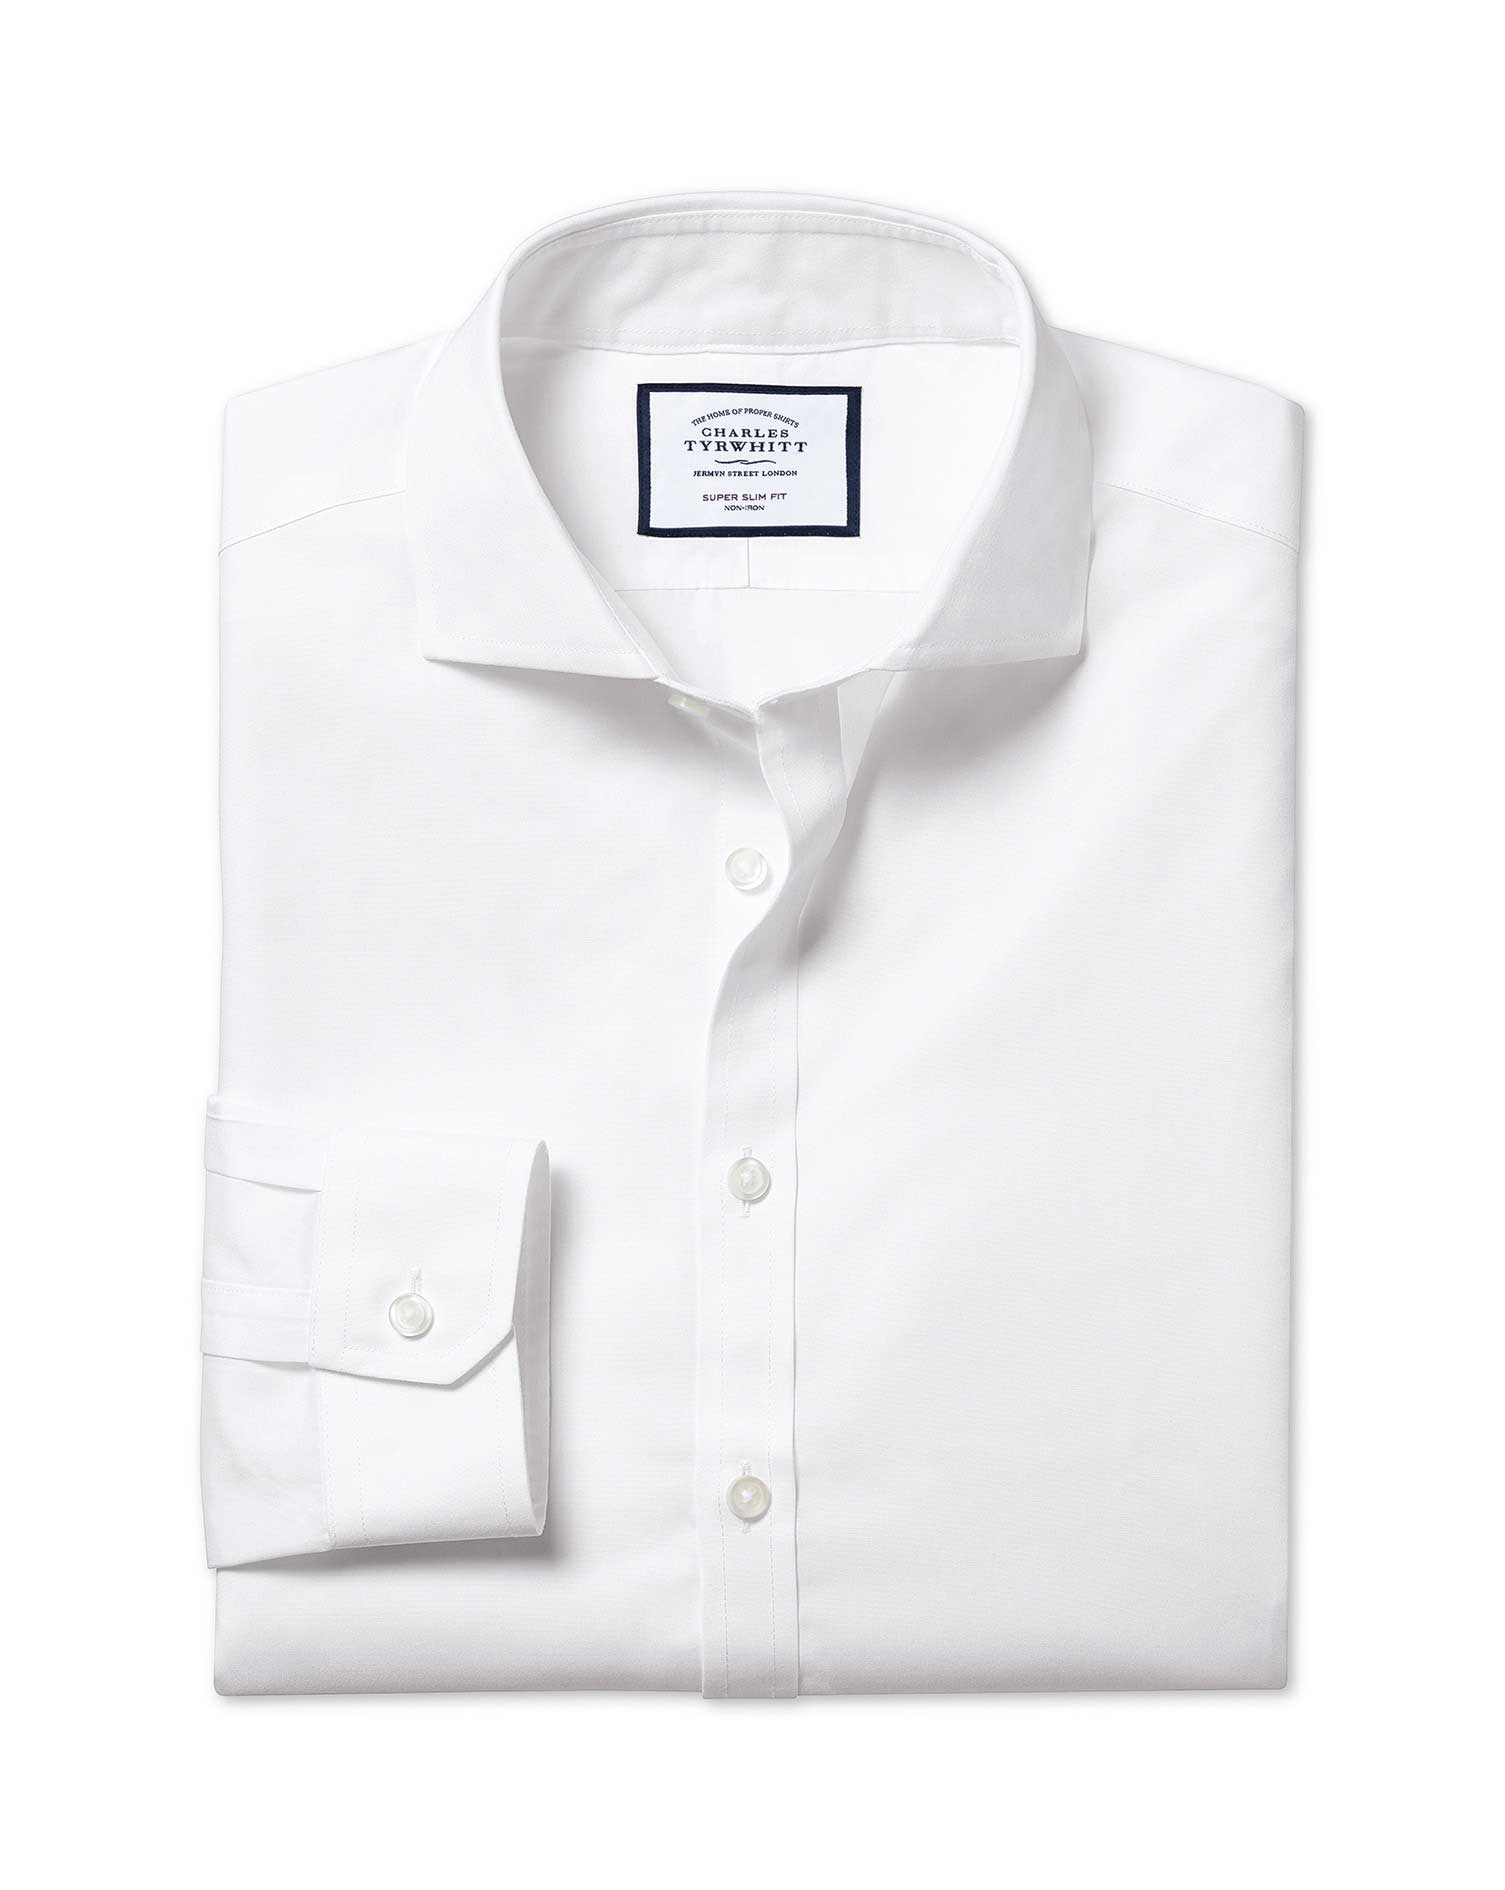 Super Slim Fit Cutaway Non-Iron Poplin White Cotton Formal Shirt Double Cuff Size 15.5/36 by Charles